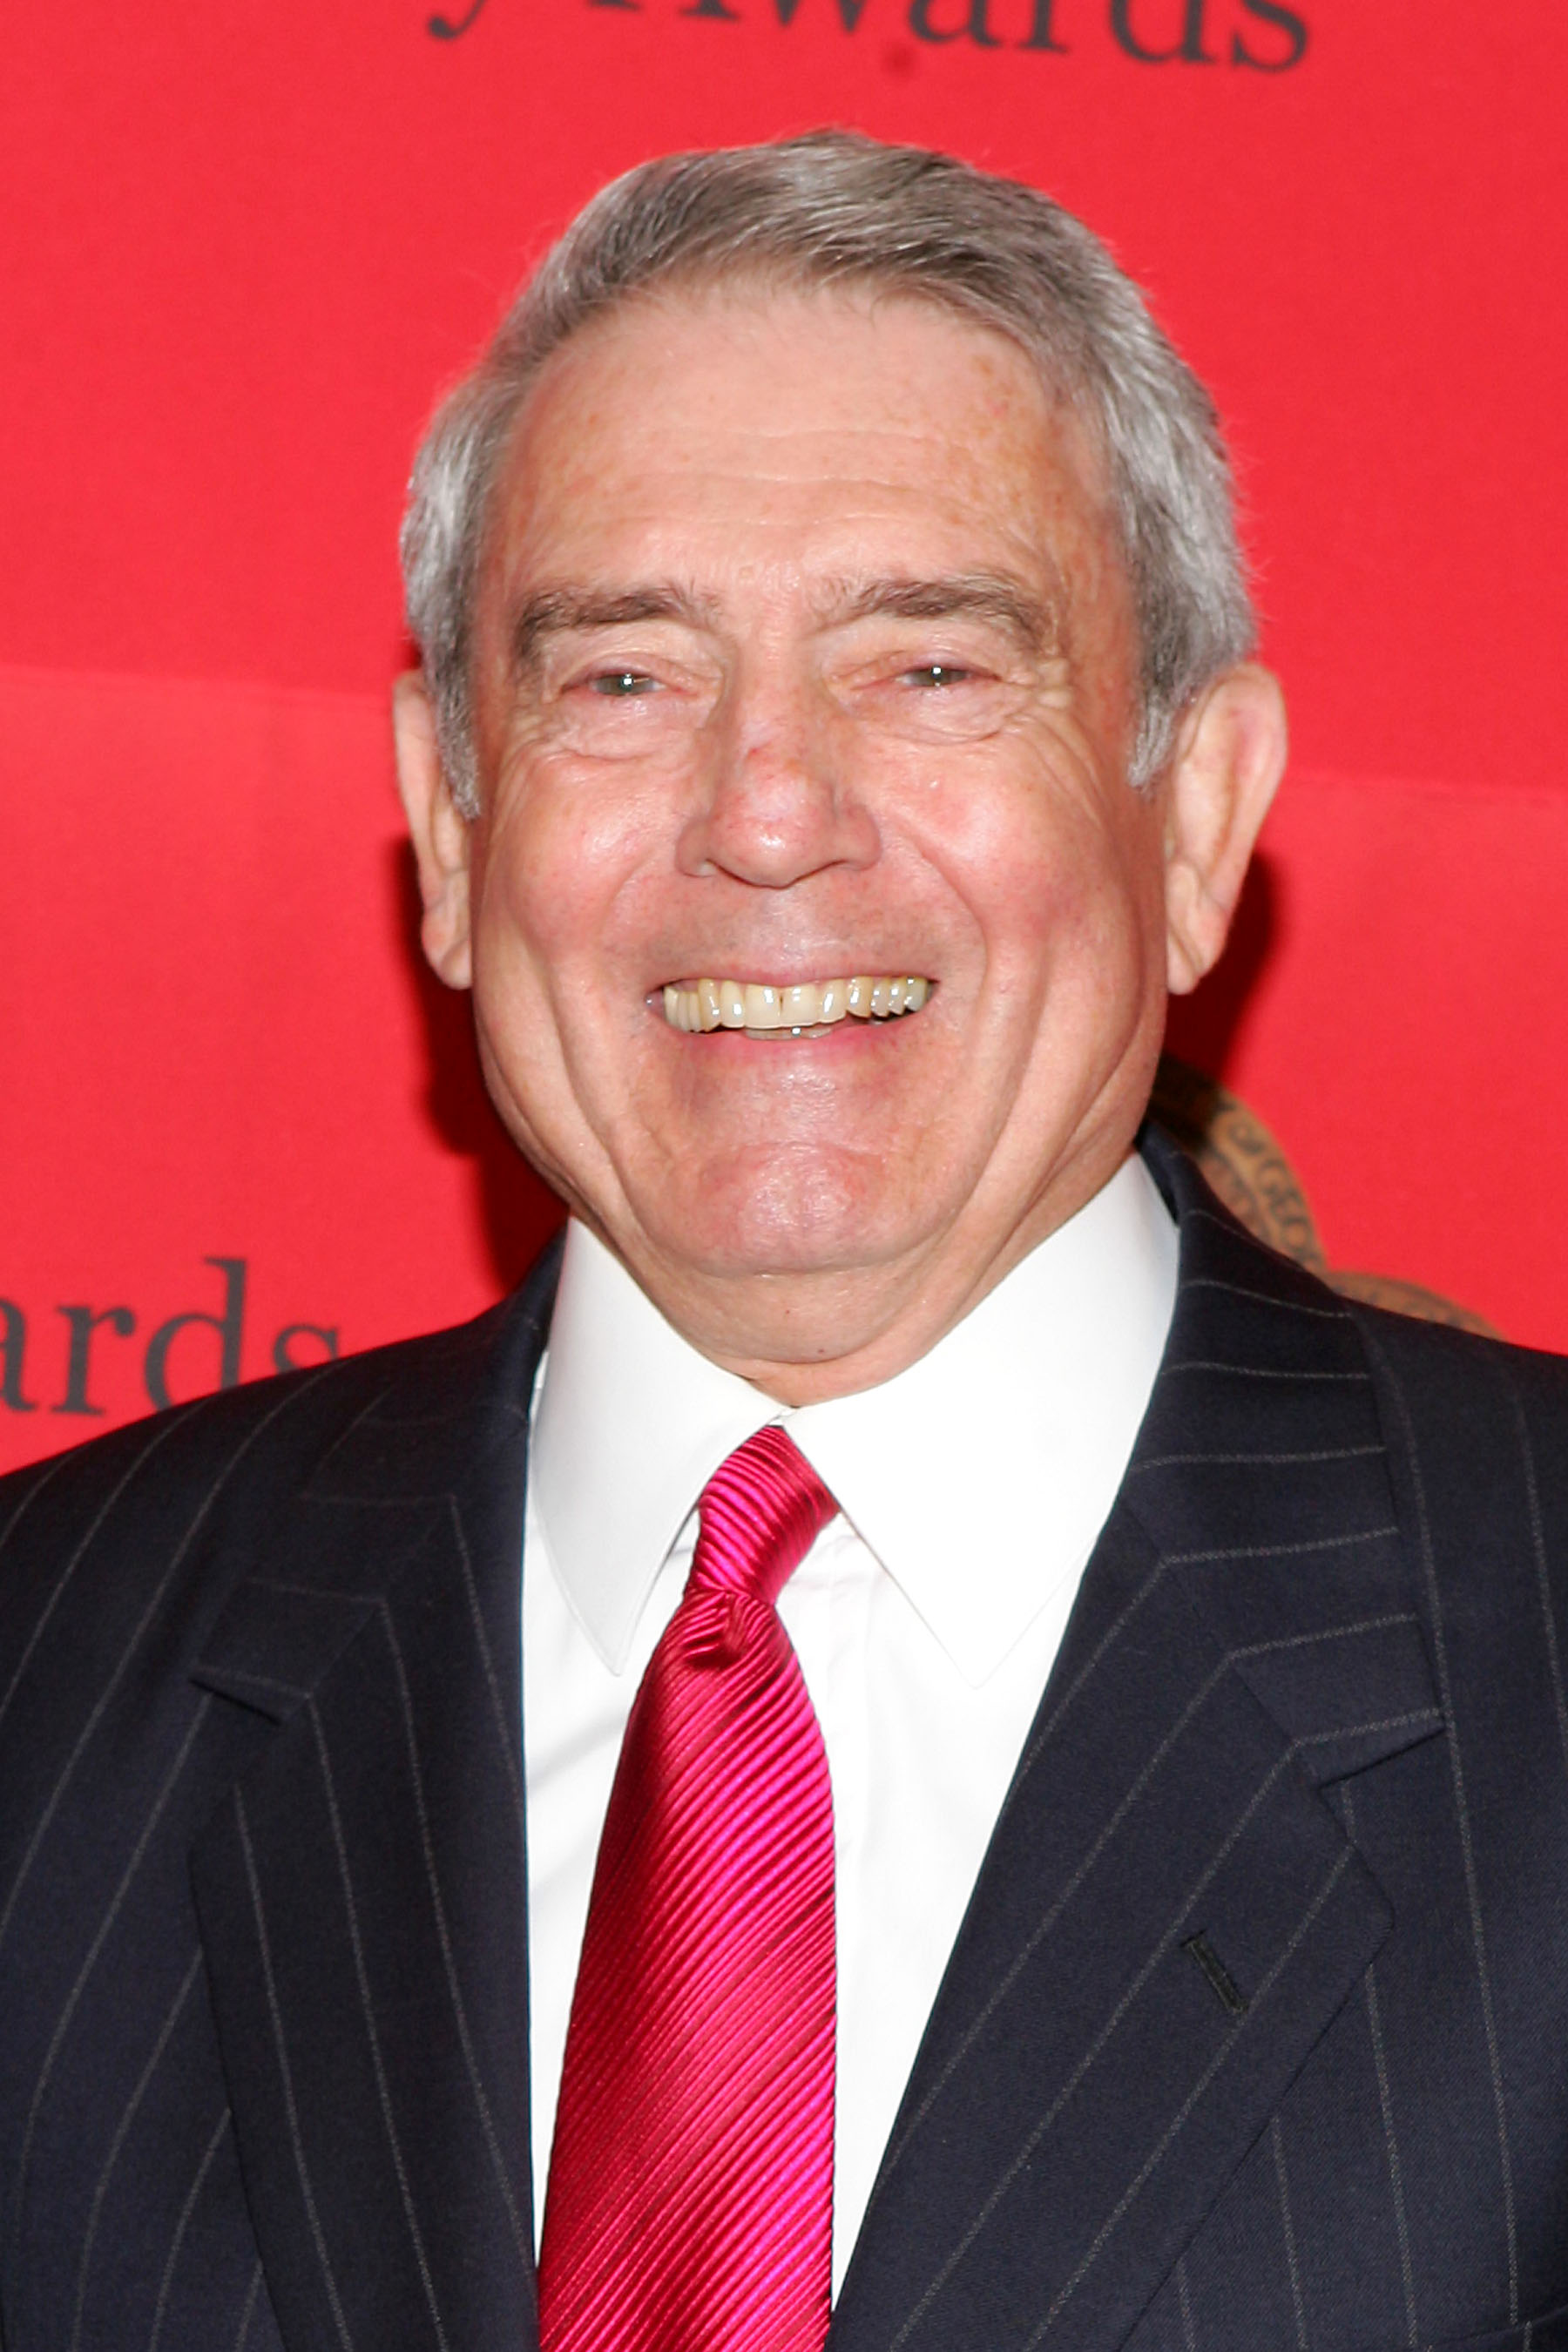 Portrait of Dan Rather